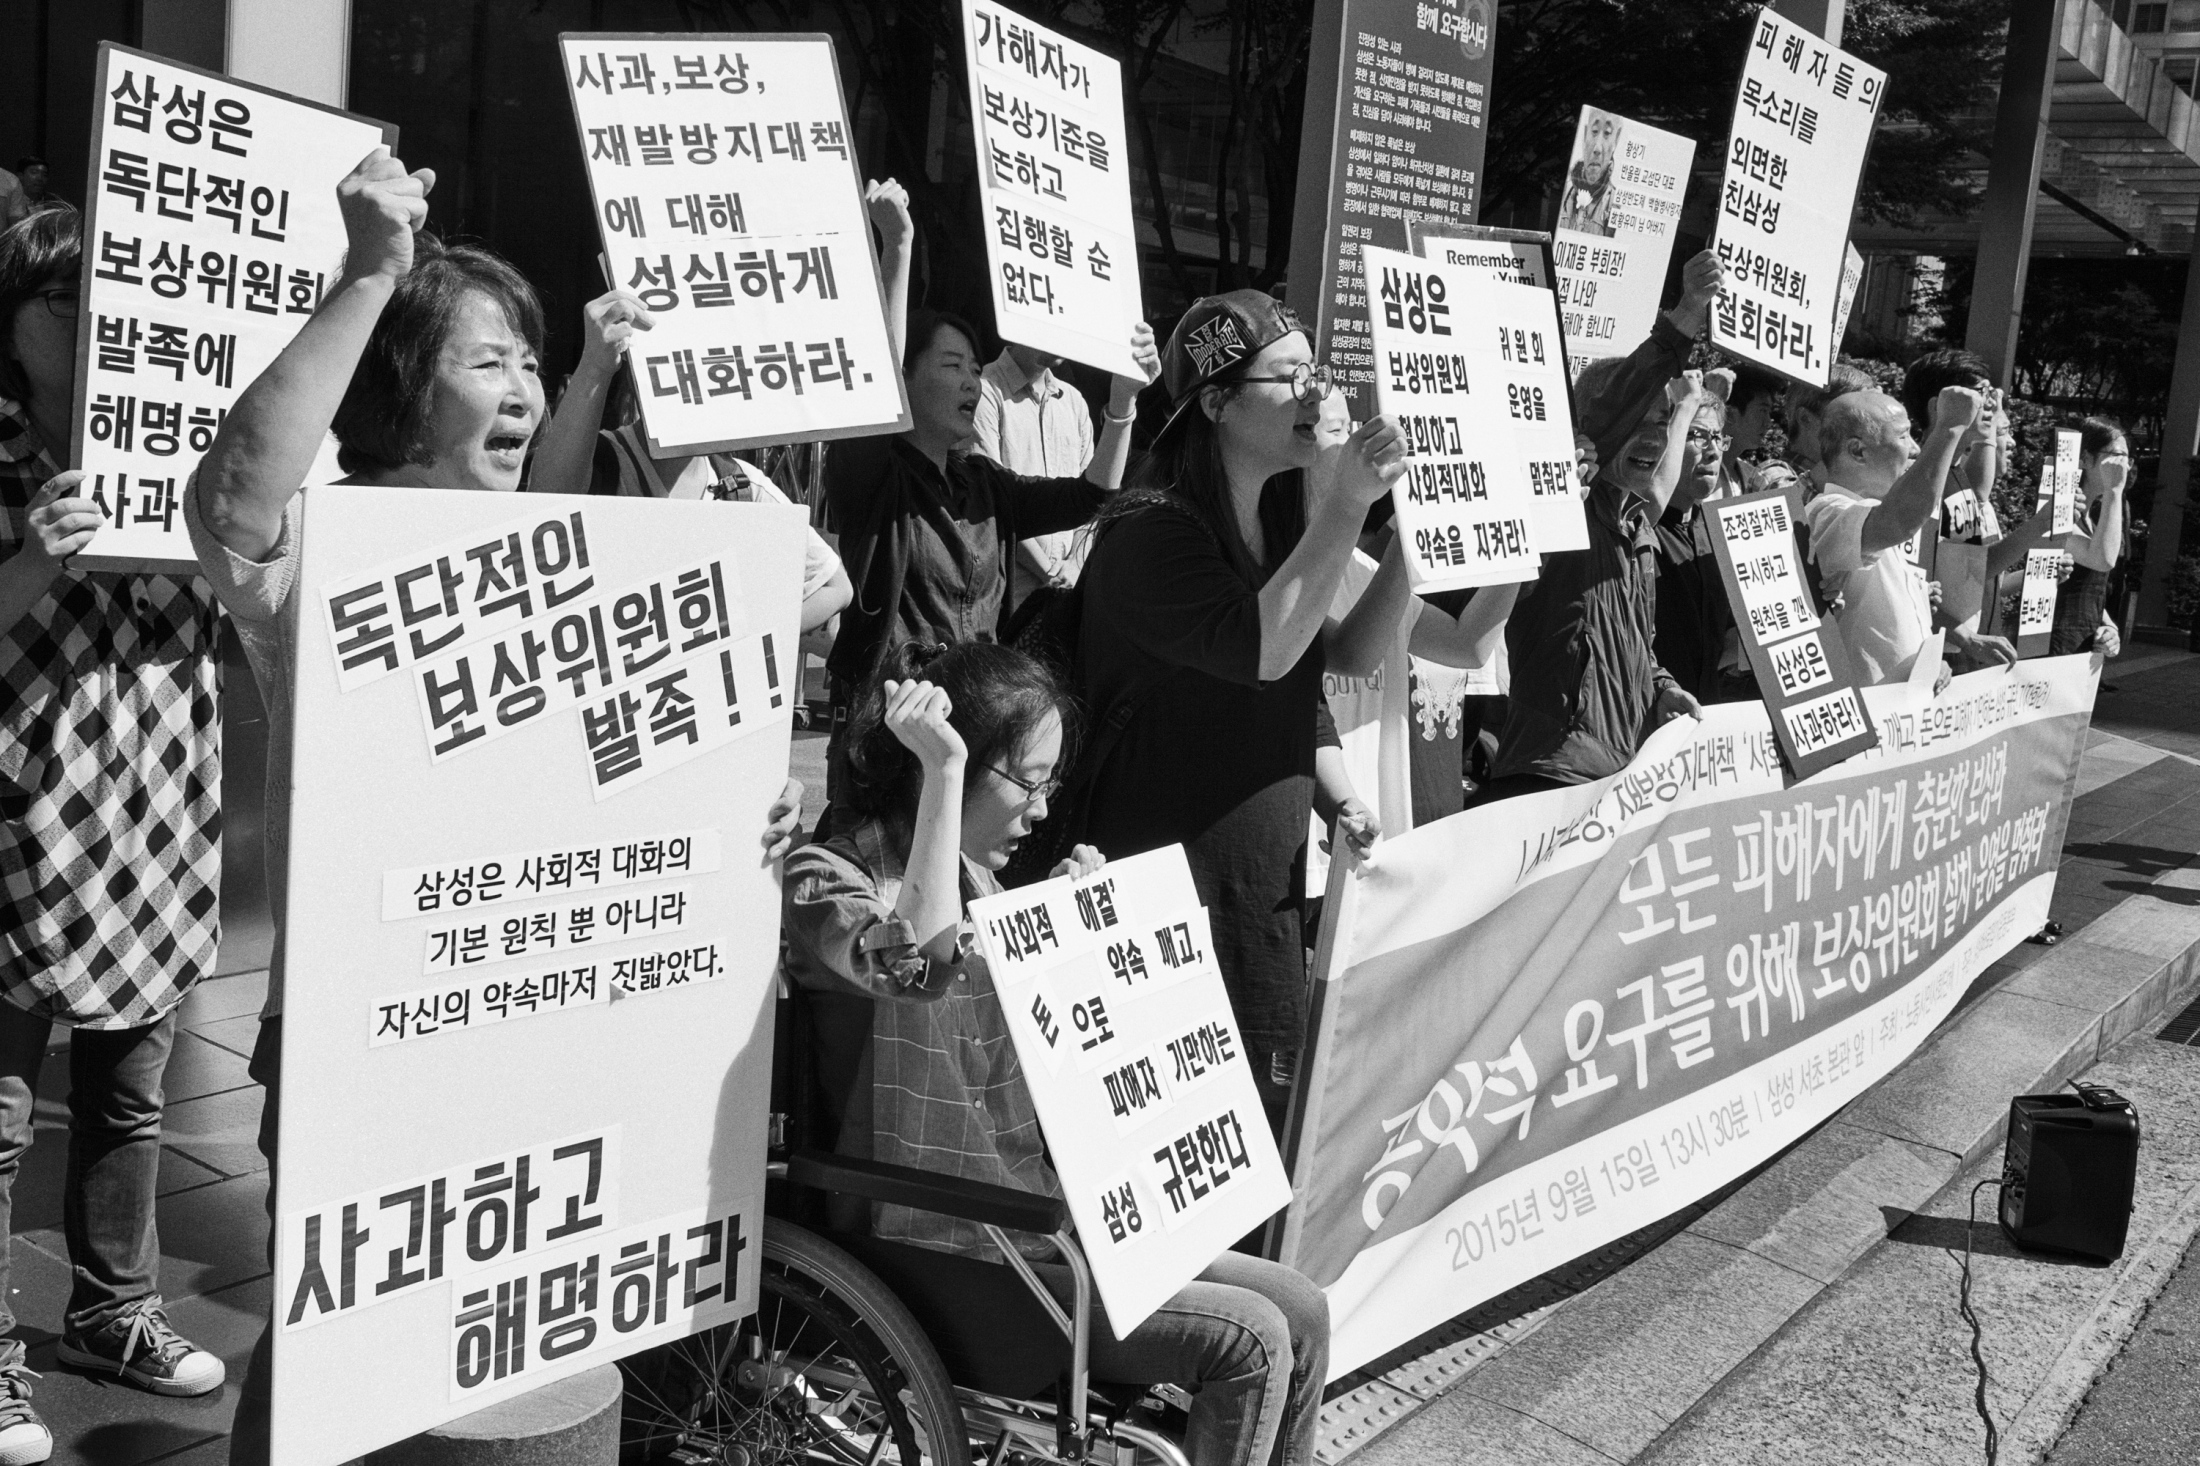 Han Hye-kyung on a wheelchair, her mother Kim Shi-nyeo on her right side, victims' family members and supporters for the victims hold a protest against the company in front of Samsung Town Headquarters on Sep. 15, 2015 in Seoul, South Korea. The victims, Banolim and Samsung Electronics started negotiation for settlement since 2013. After months of tedious meetings and arguments, they agreed to organize the coordination committee from the third party and authorize the committee to proceed the negotiation in October 2014. The committee suggested the first draft of the compensation plan at the meeting, but none of the parties accepted the offer. After the meeting, on September 2015 Samsung Electronics announced to launch their compensation package for the victims independently in disregard of the year-long meeting with the coordination committee and victims' family members.